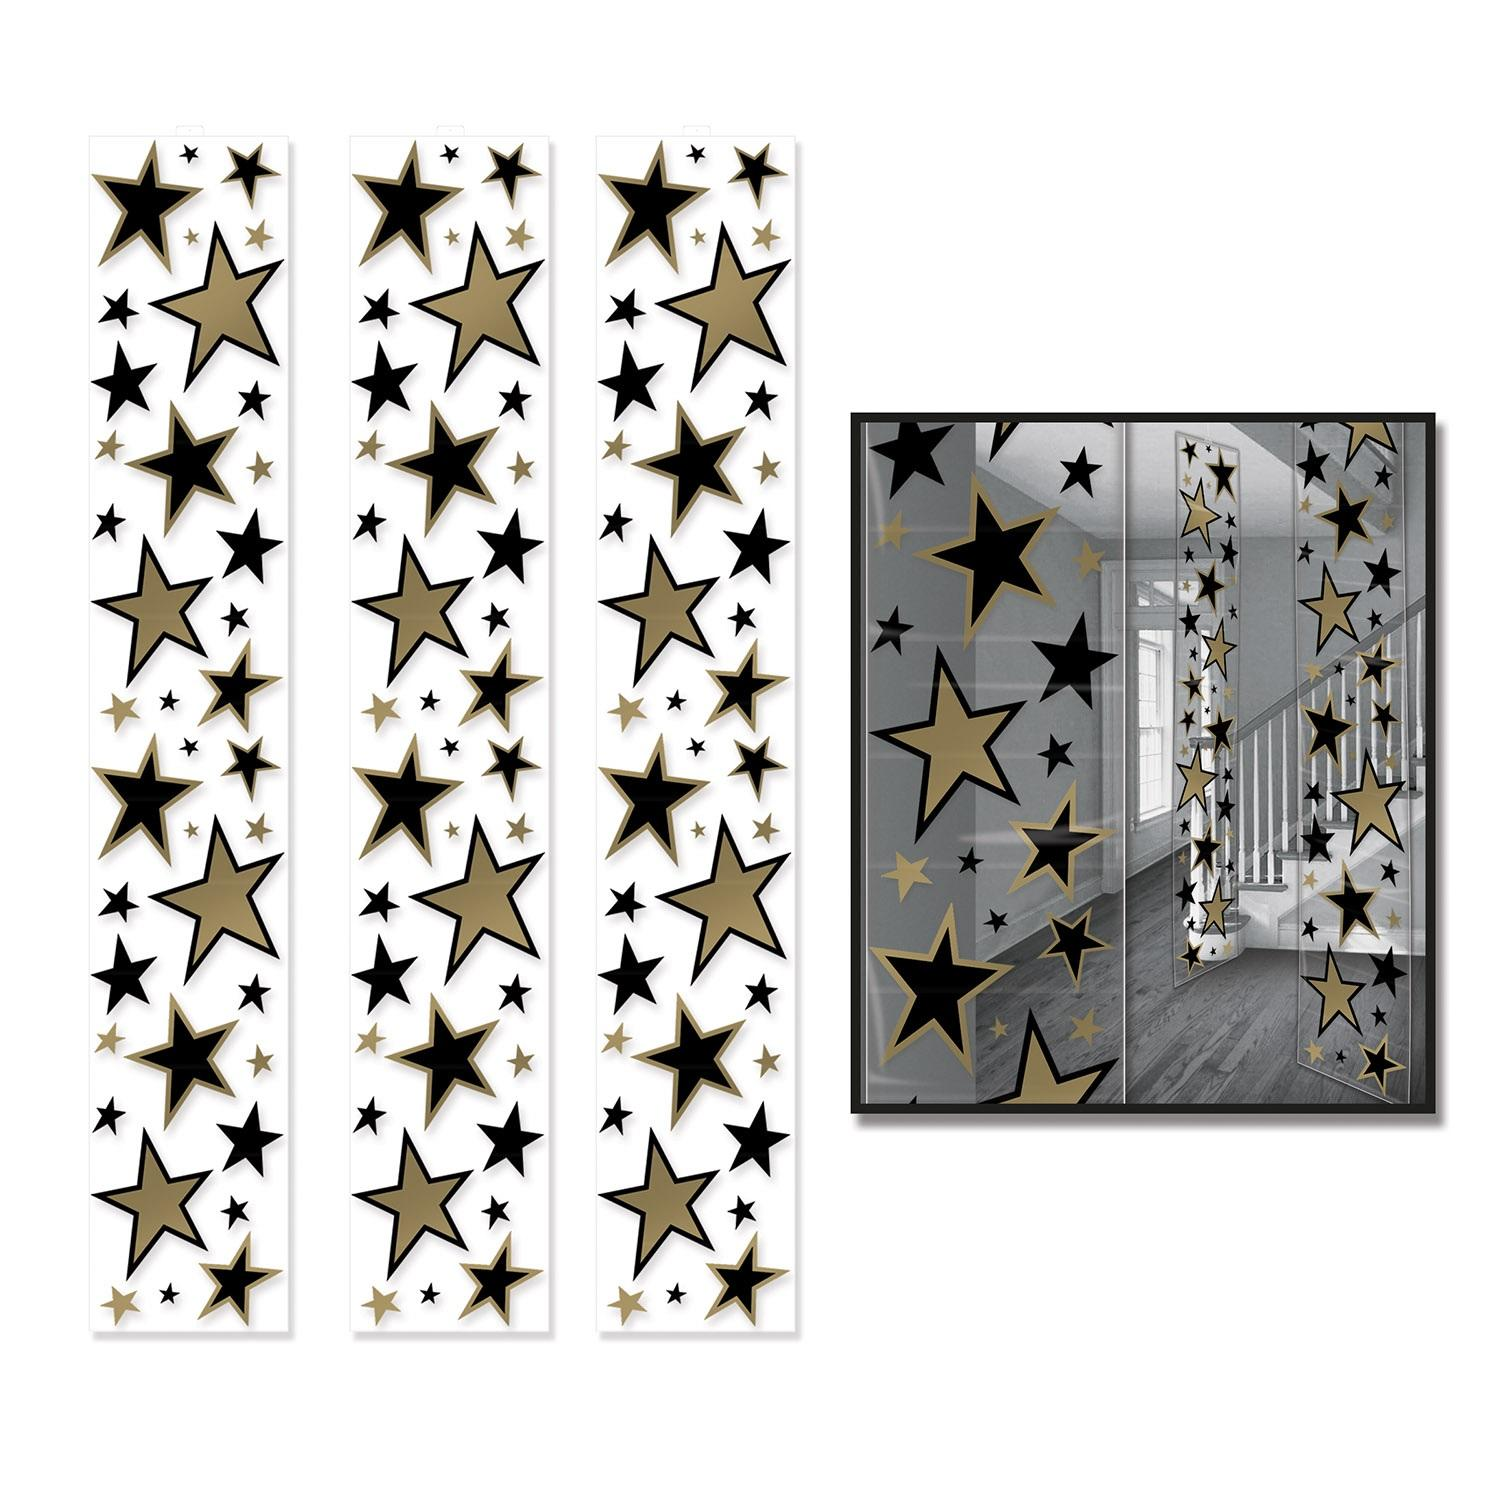 Pack of 36 Black and Gold Star Party Panel Decorations 6'